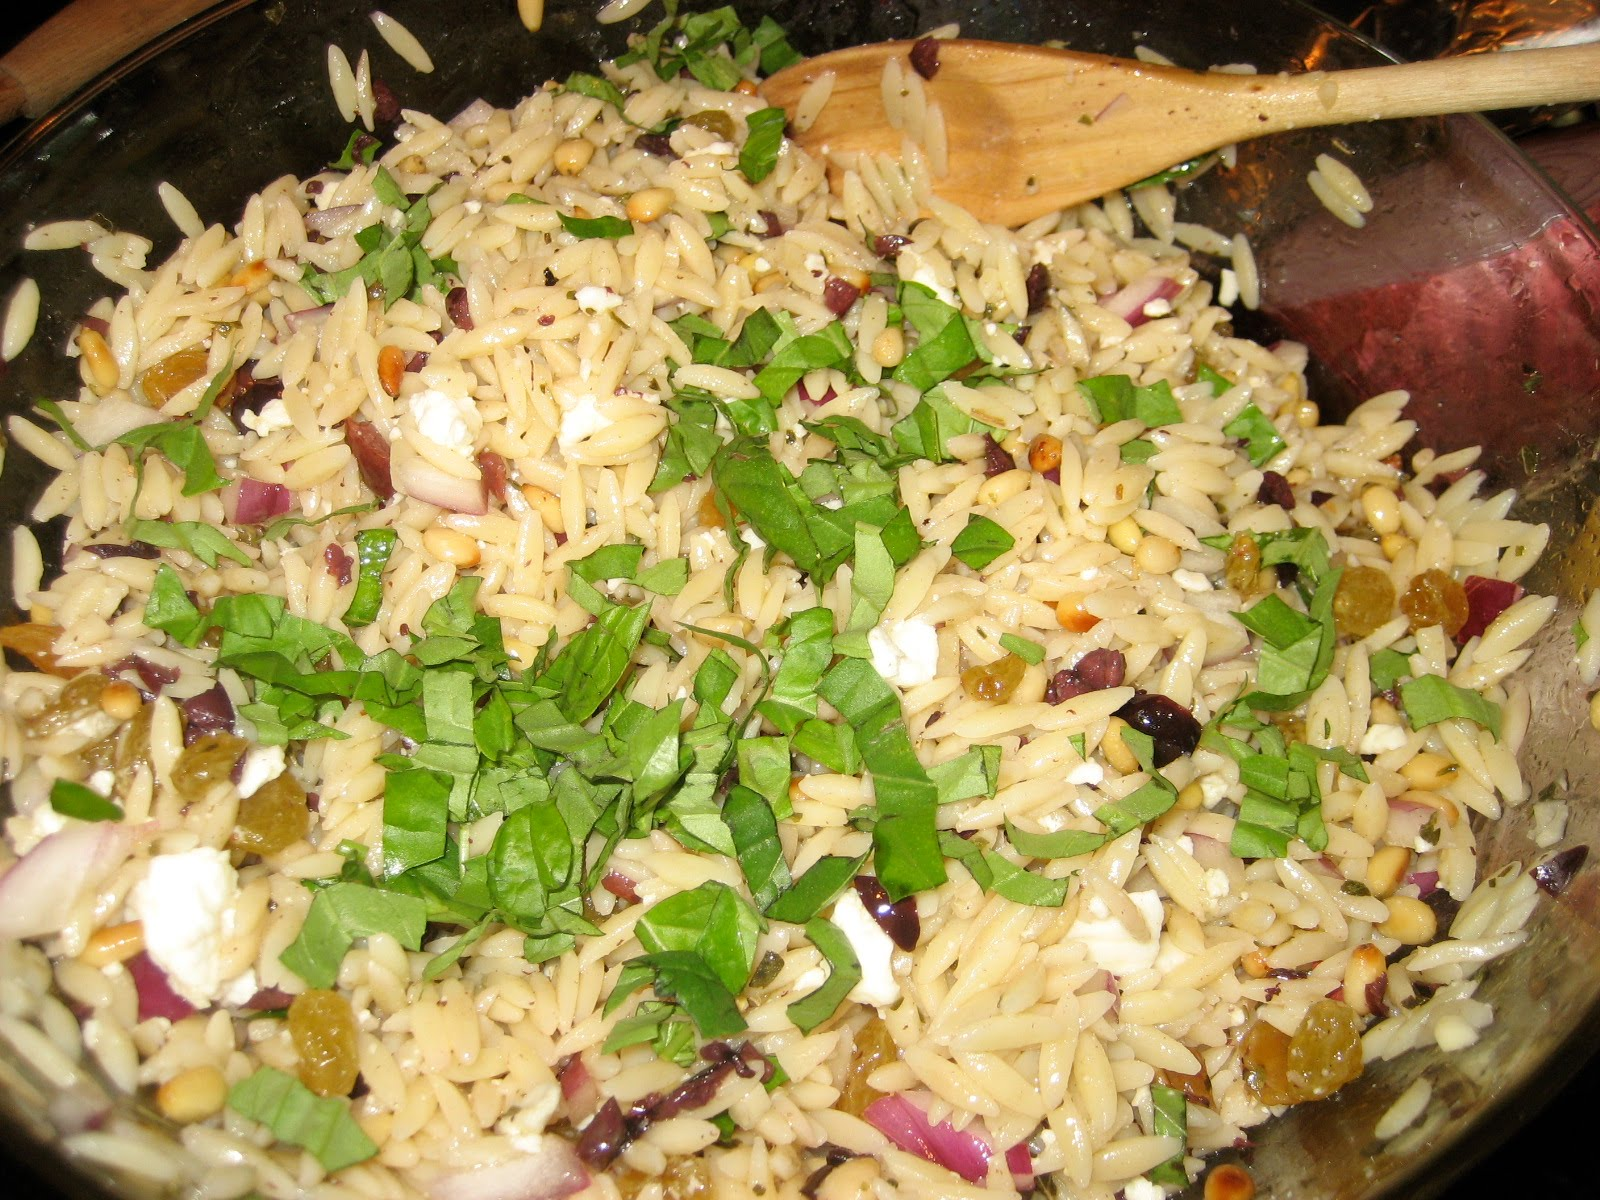 Stew In Summertime: Orzo Salad with Lemon, Feta and Pine Nuts